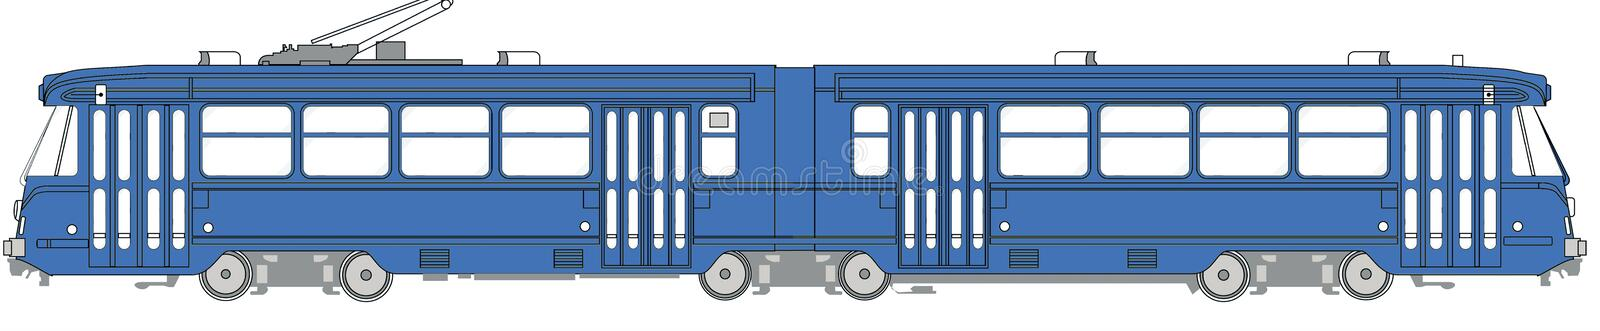 Illustration Of A Tramway Stock Photos